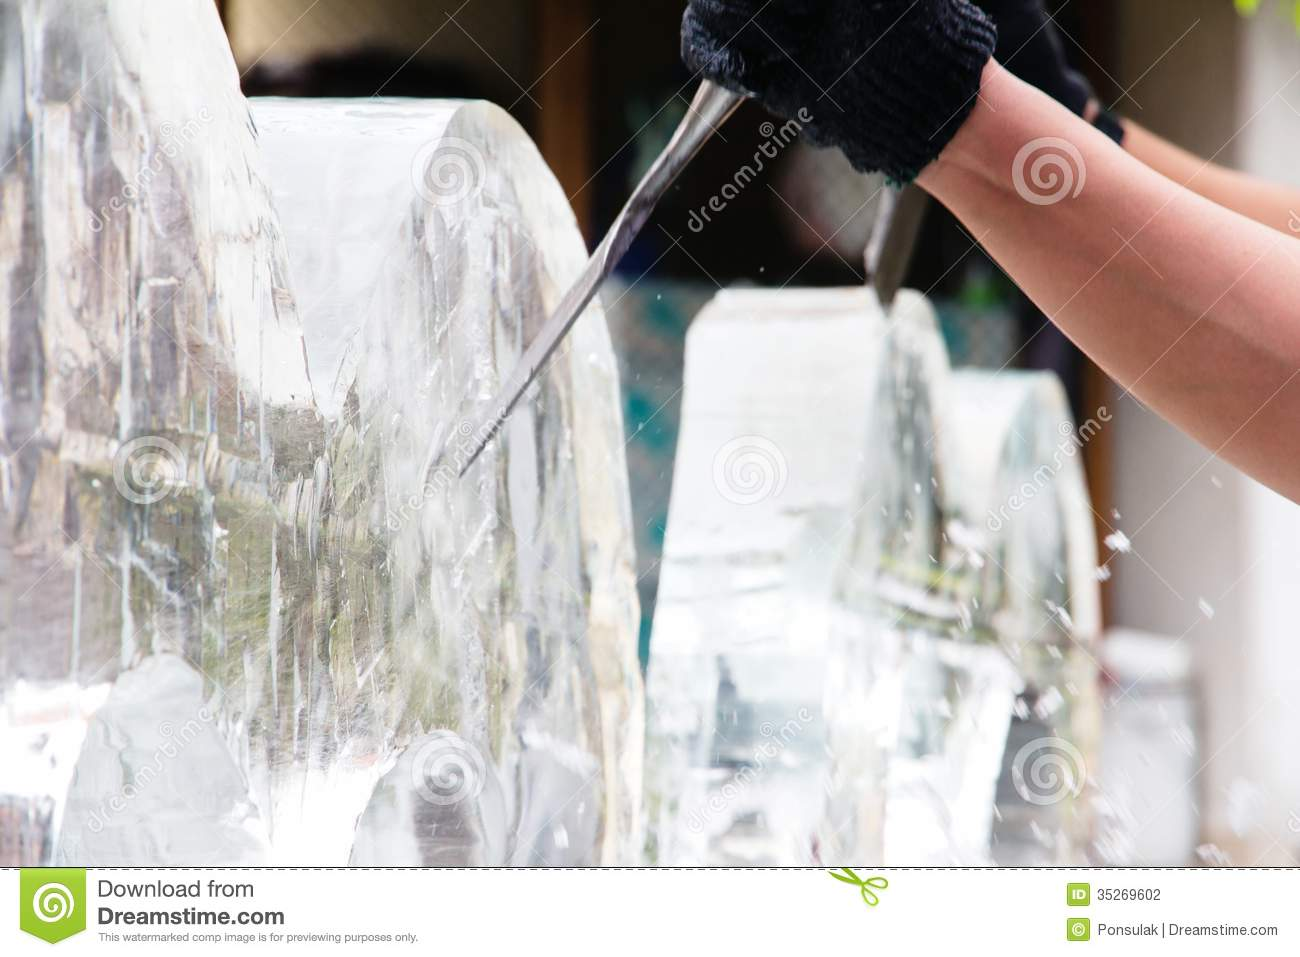 how to start ice sculpting